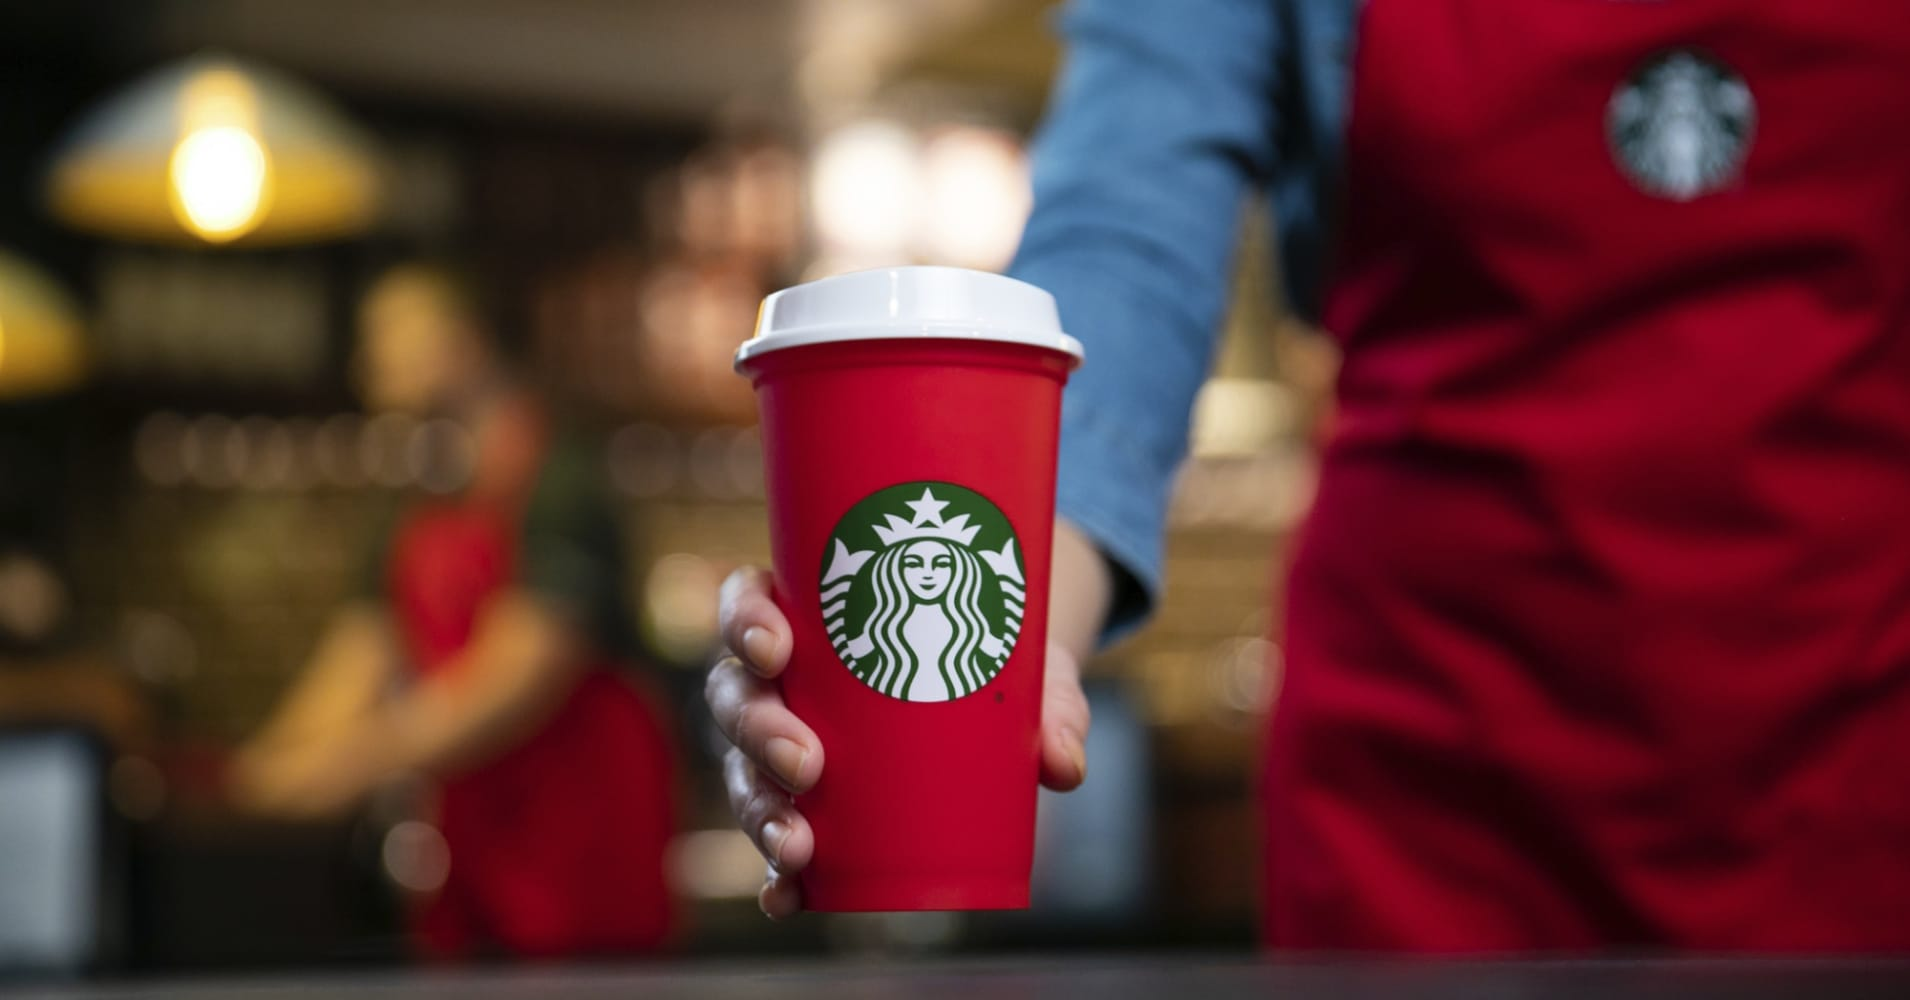 Starbucks stores are running out of reusable red cups on first day of holiday promotion